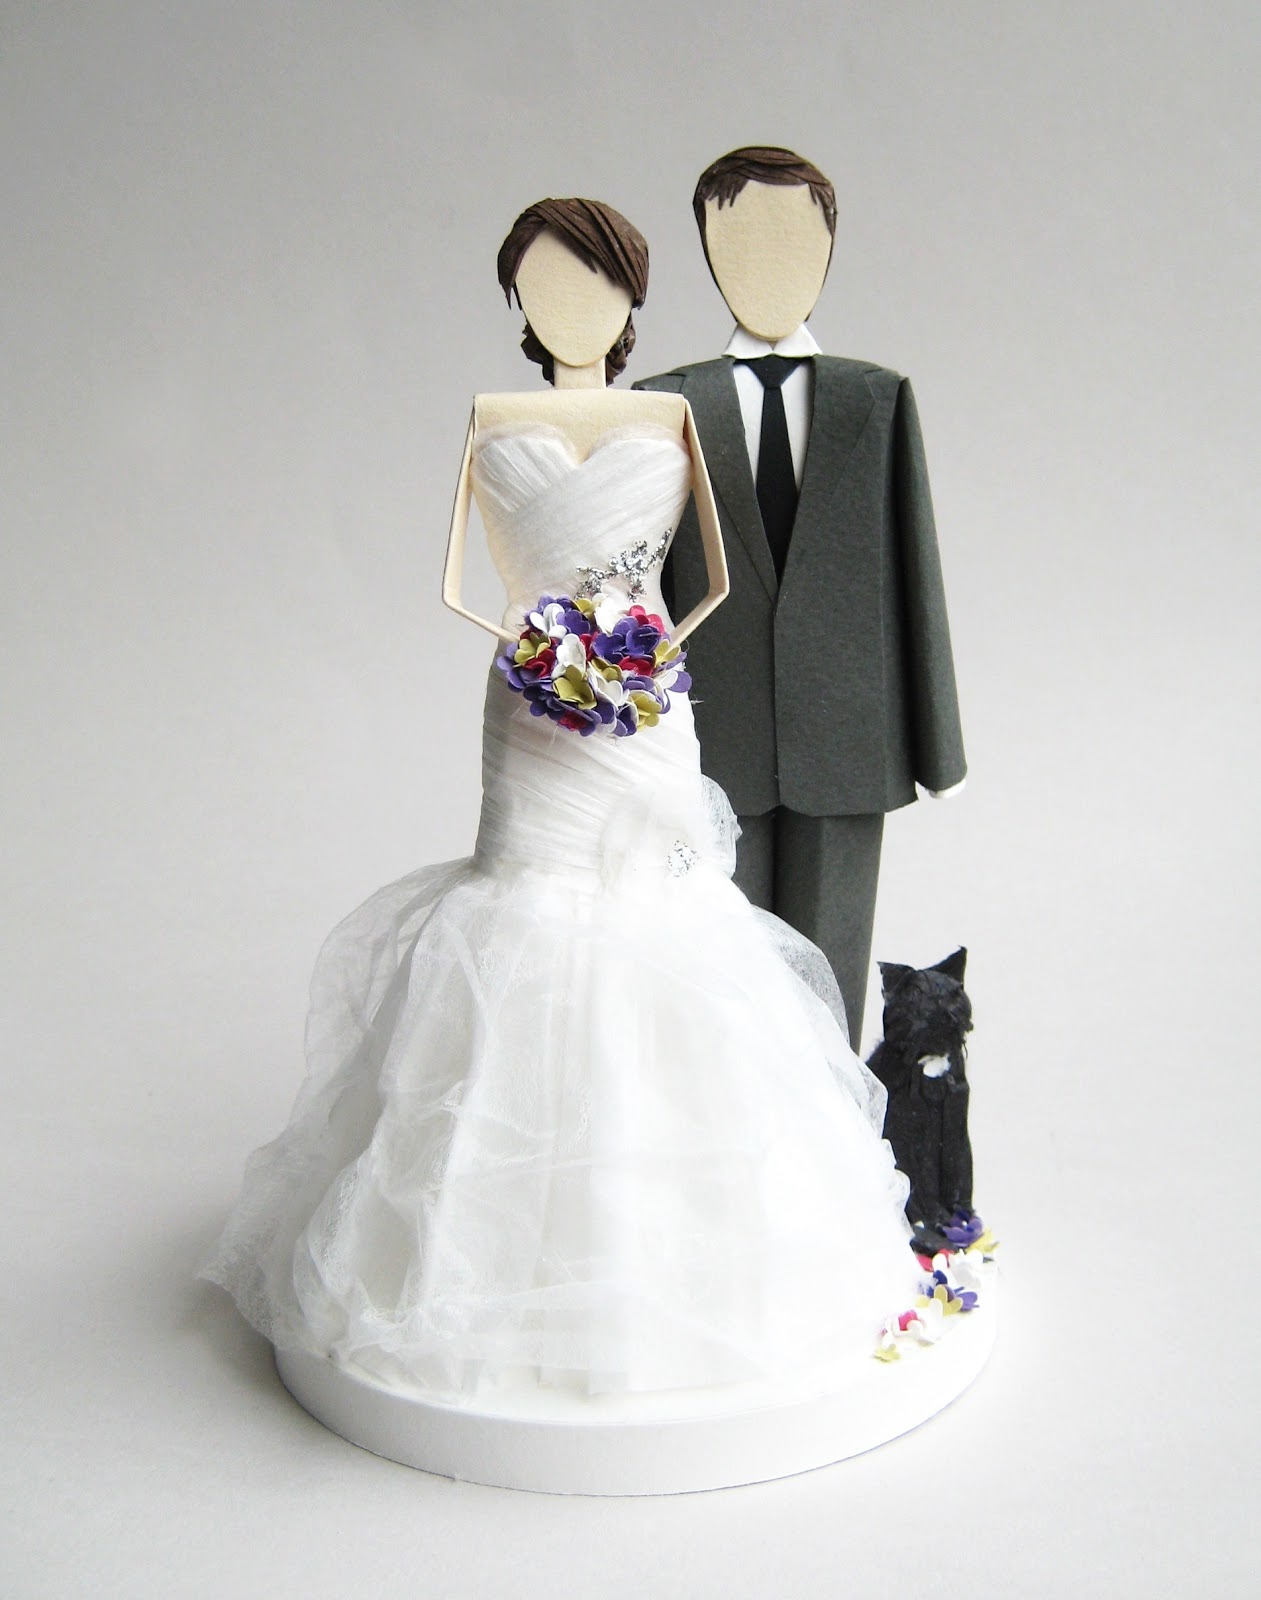 Concarta Paper sculpture cake toppers for weddings